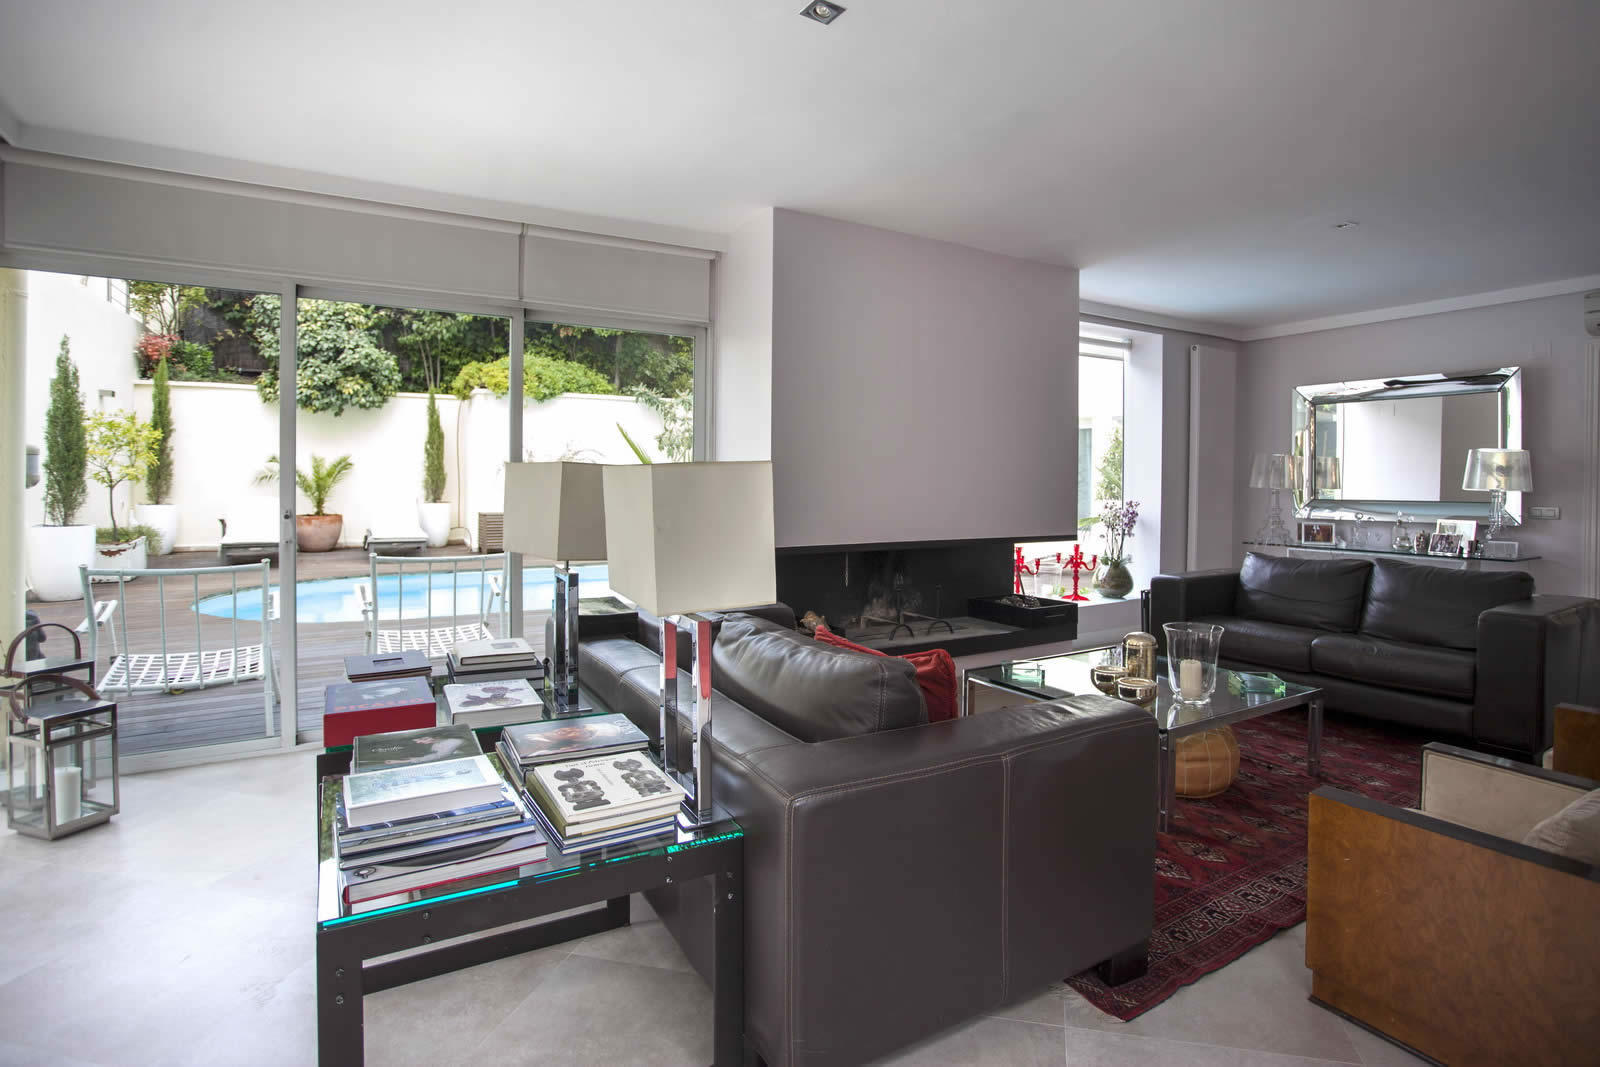 Spacious House with Large Kitchen Garden and Pool for sale in Madrid Spain